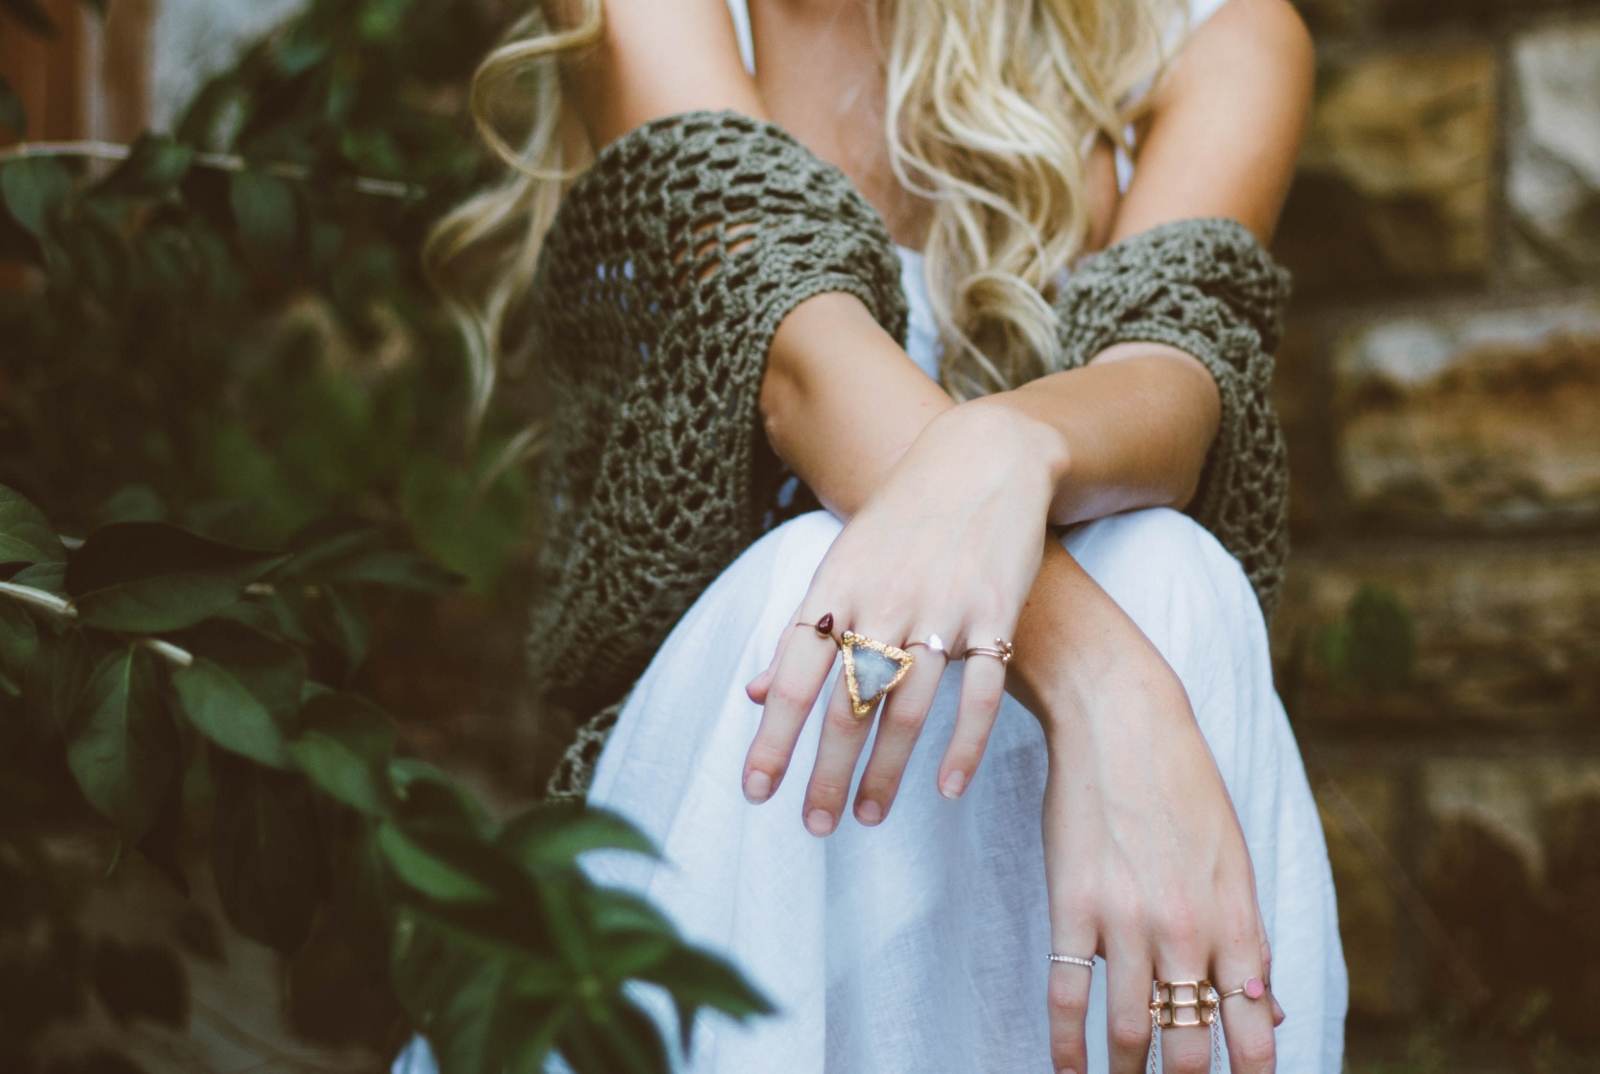 8 Quirky Engagement Ring Ideas For The Alternative Couple